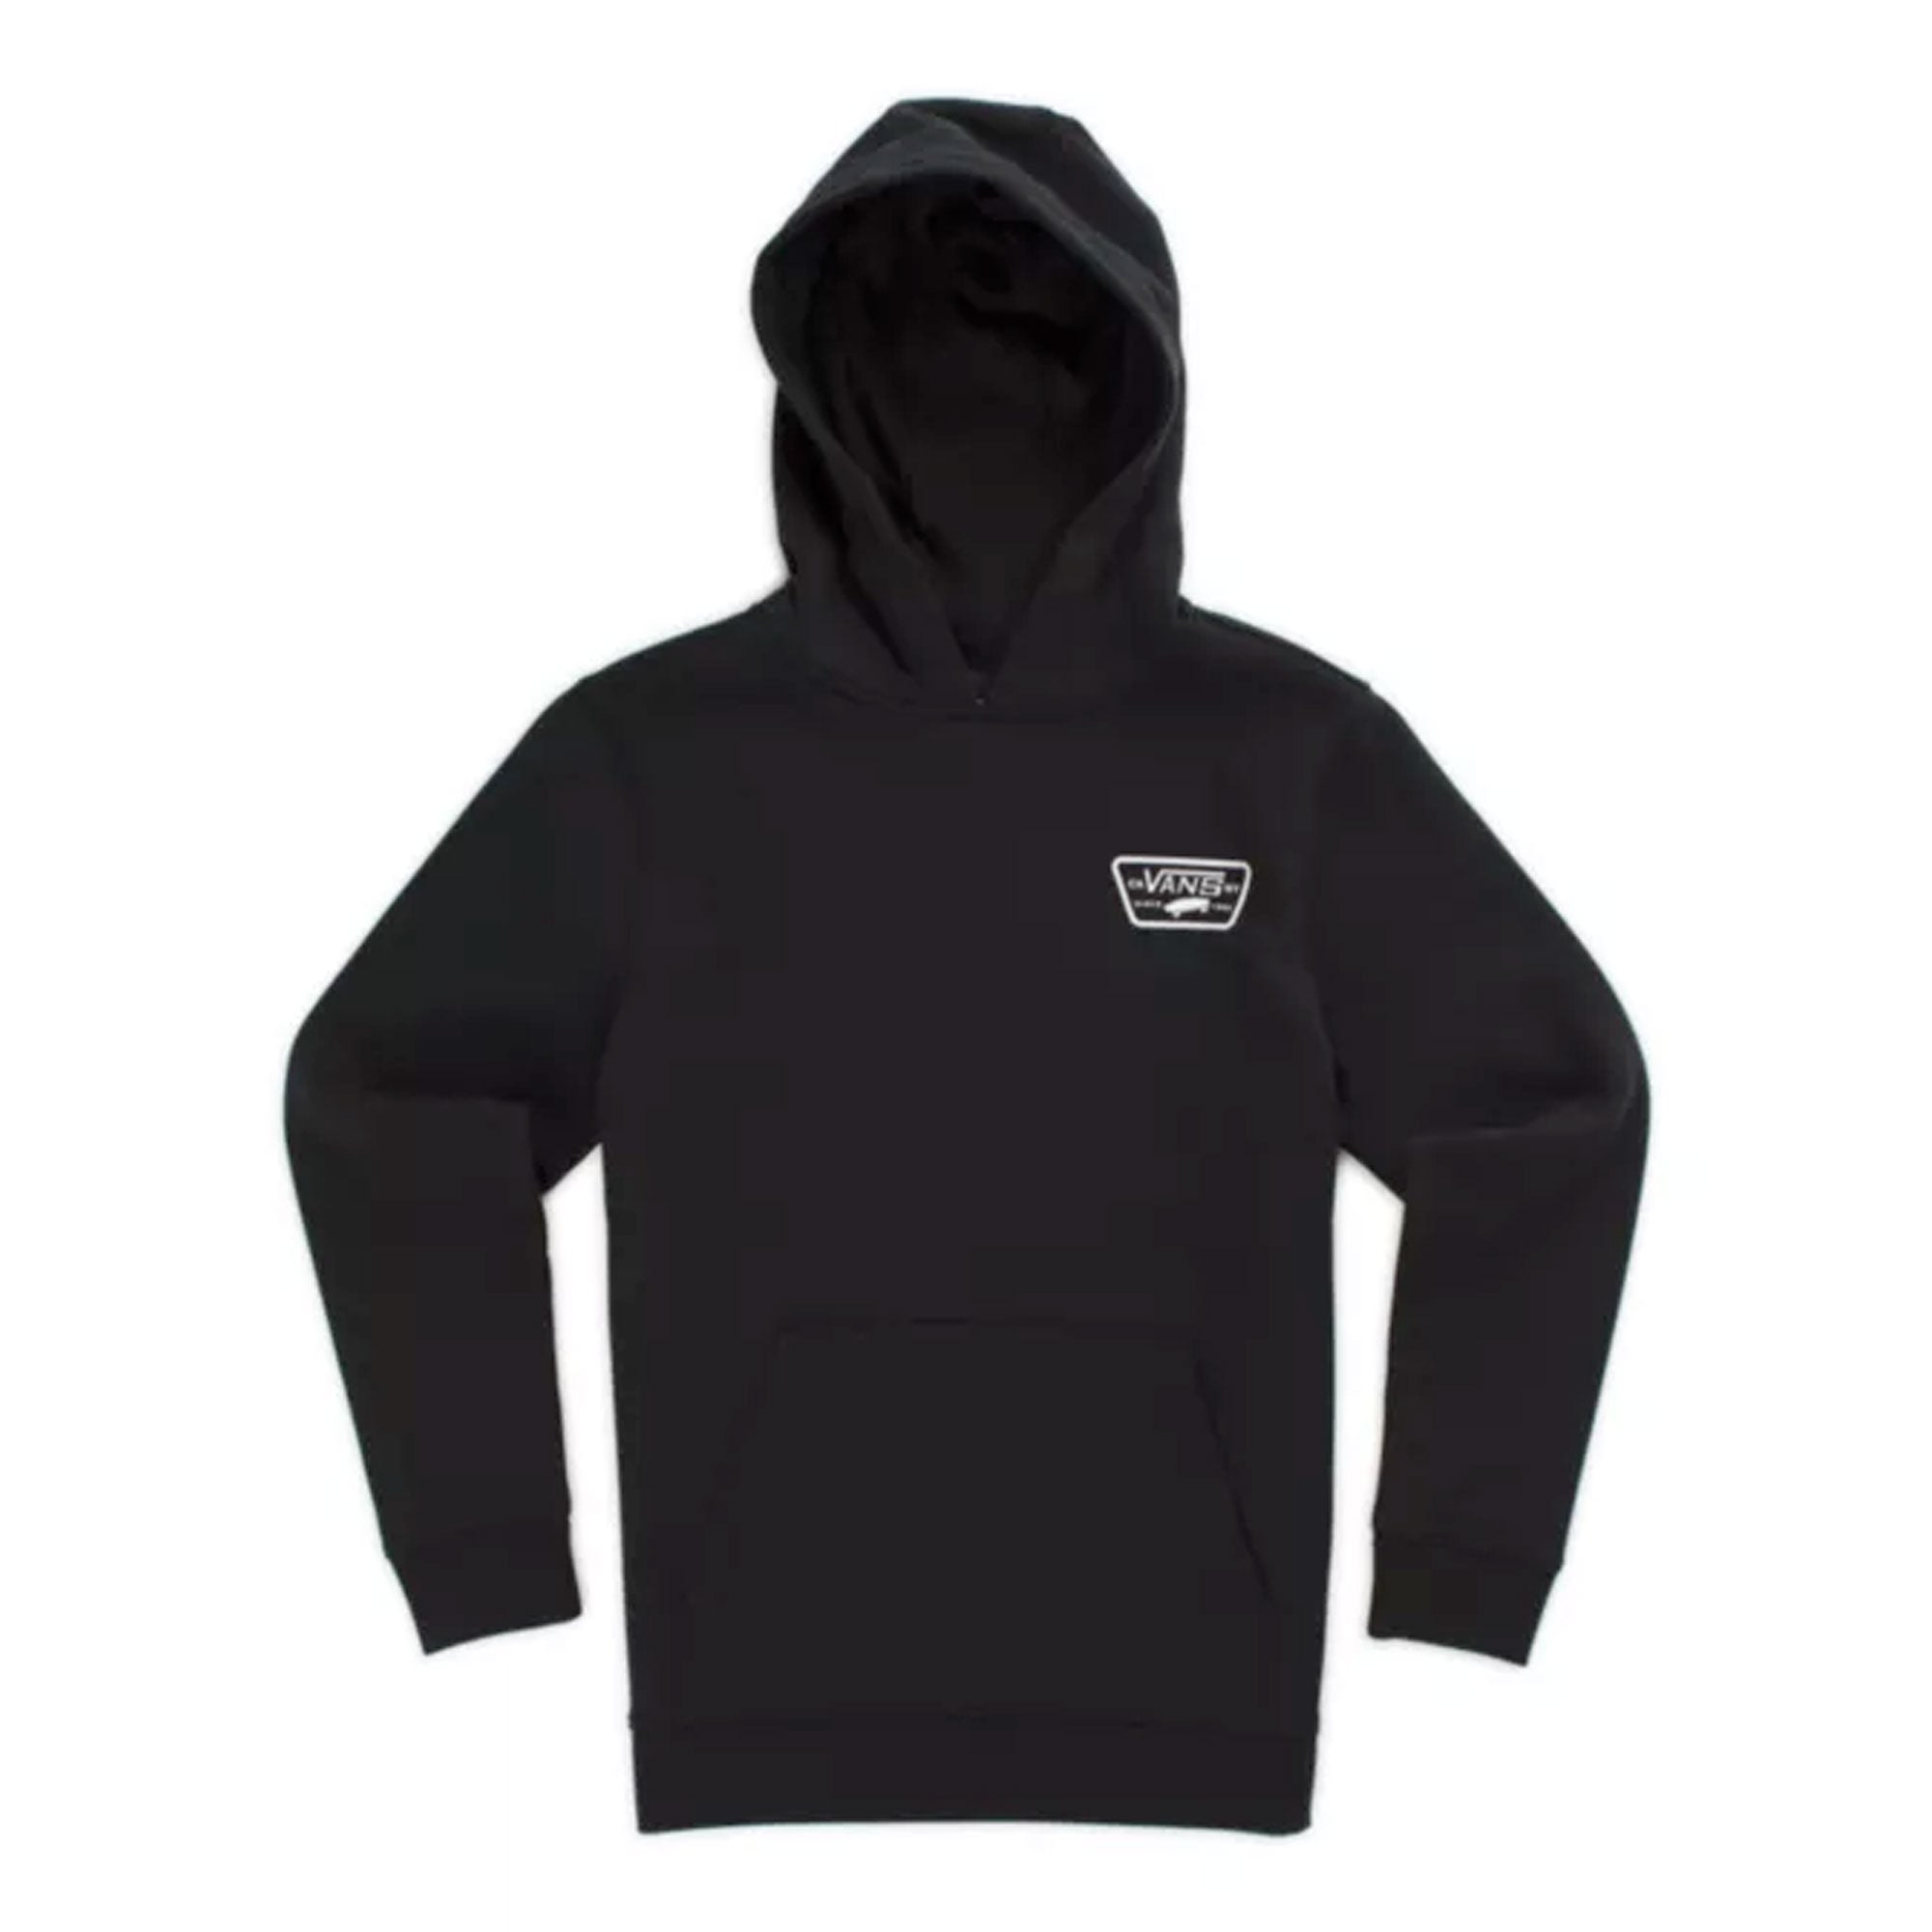 Vans Full Patched Men's Pullover Hoodie - Black